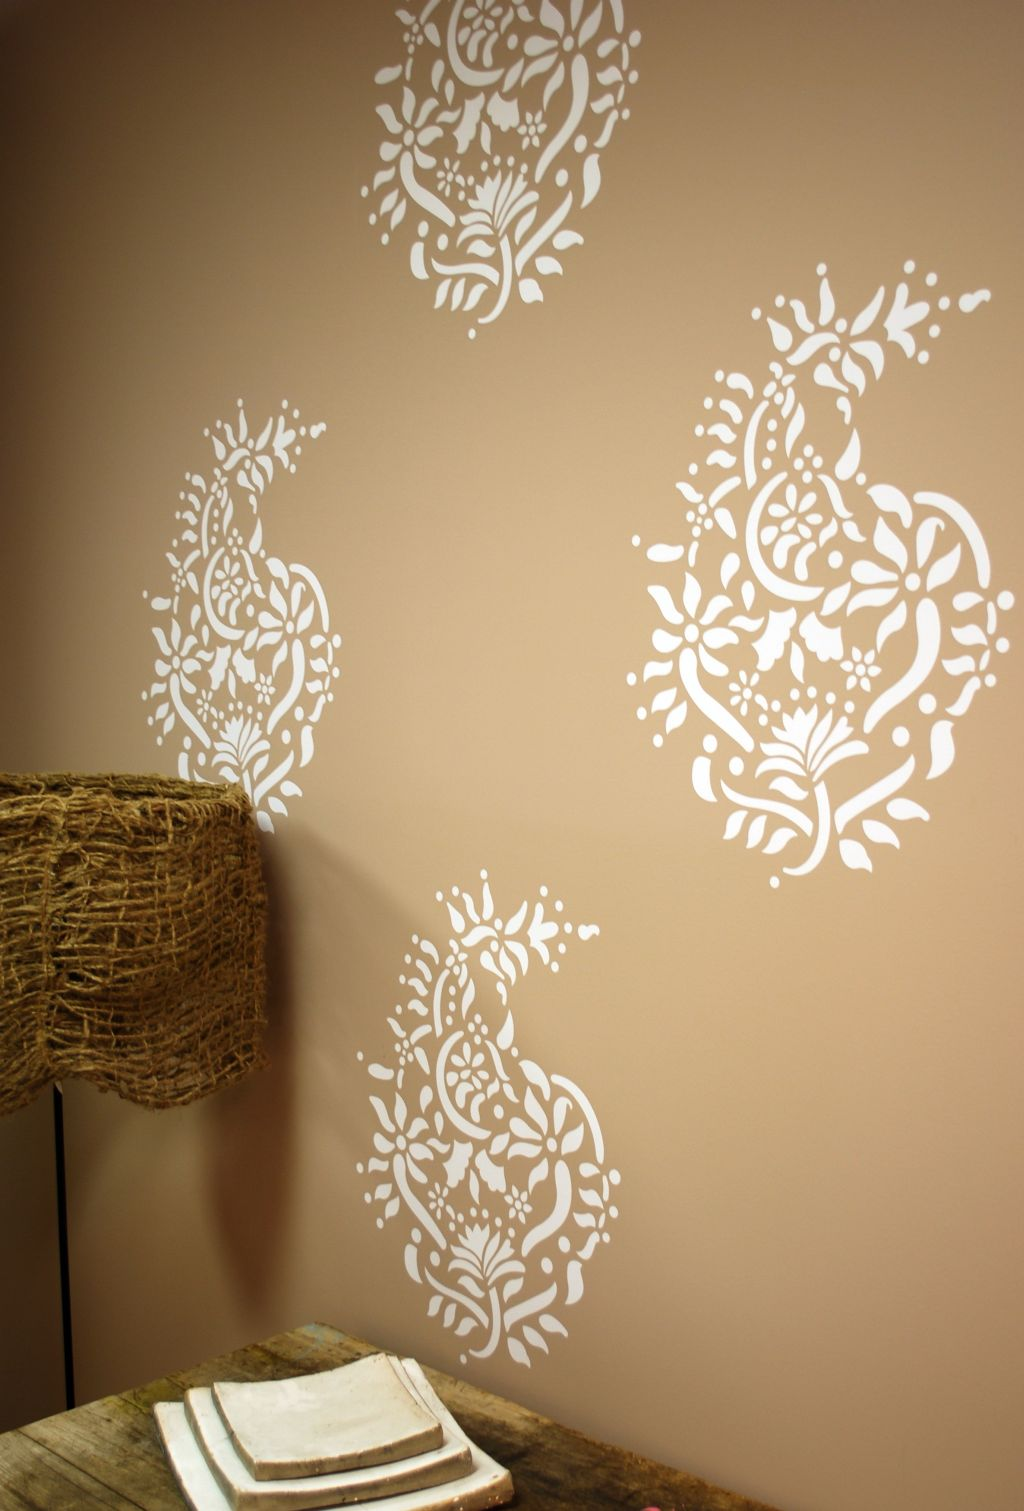 how to do wall painting designs | My Web Value